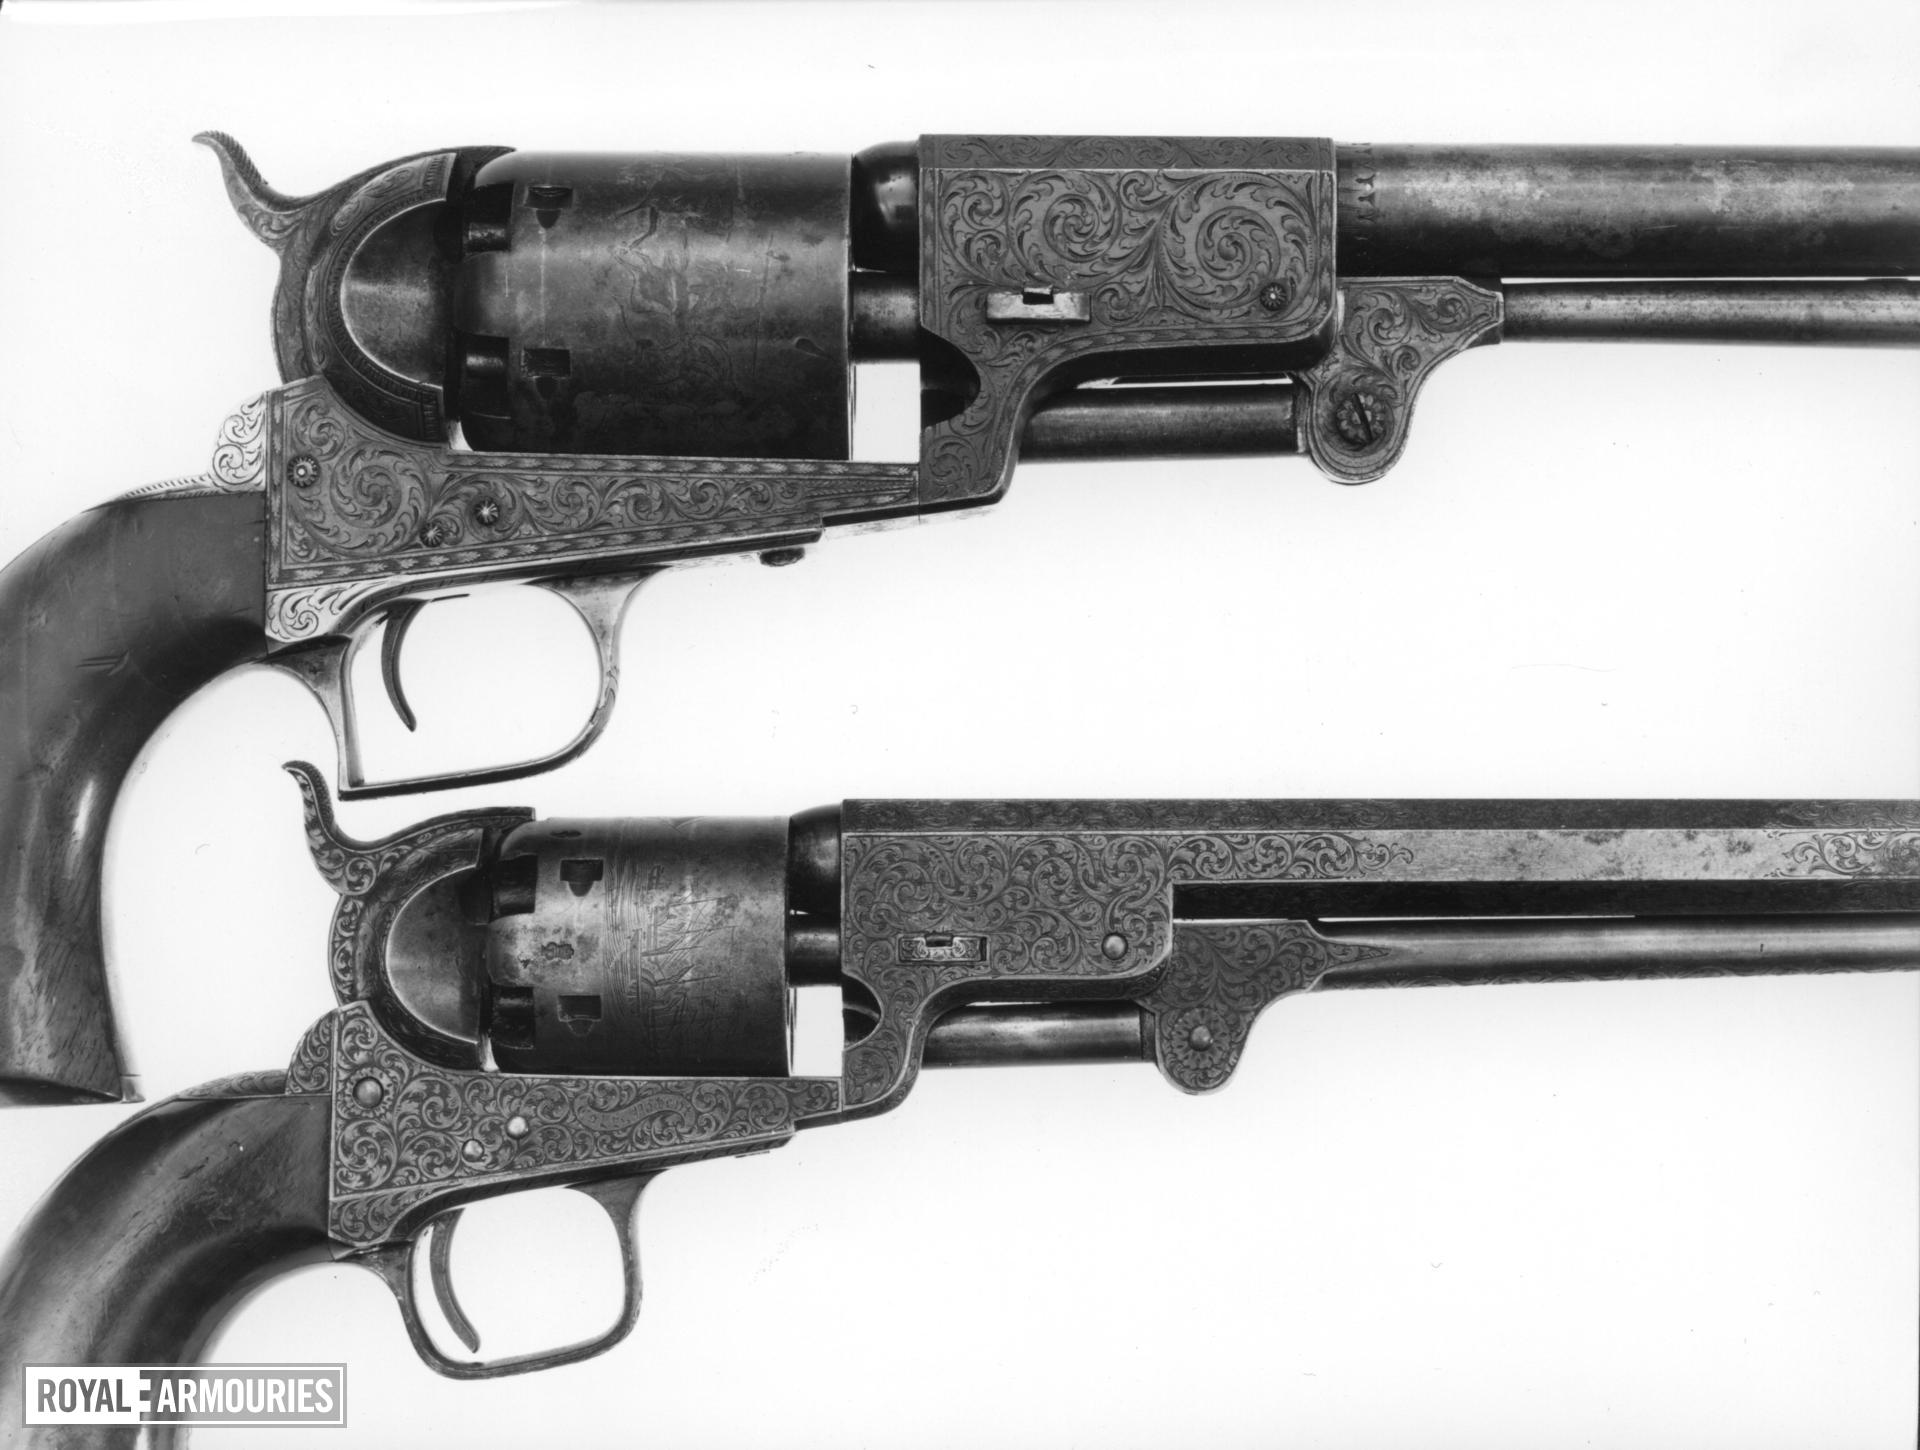 Percussion six-shot revolver - Colt Dragoon Model 1848, Second Series Retailed London